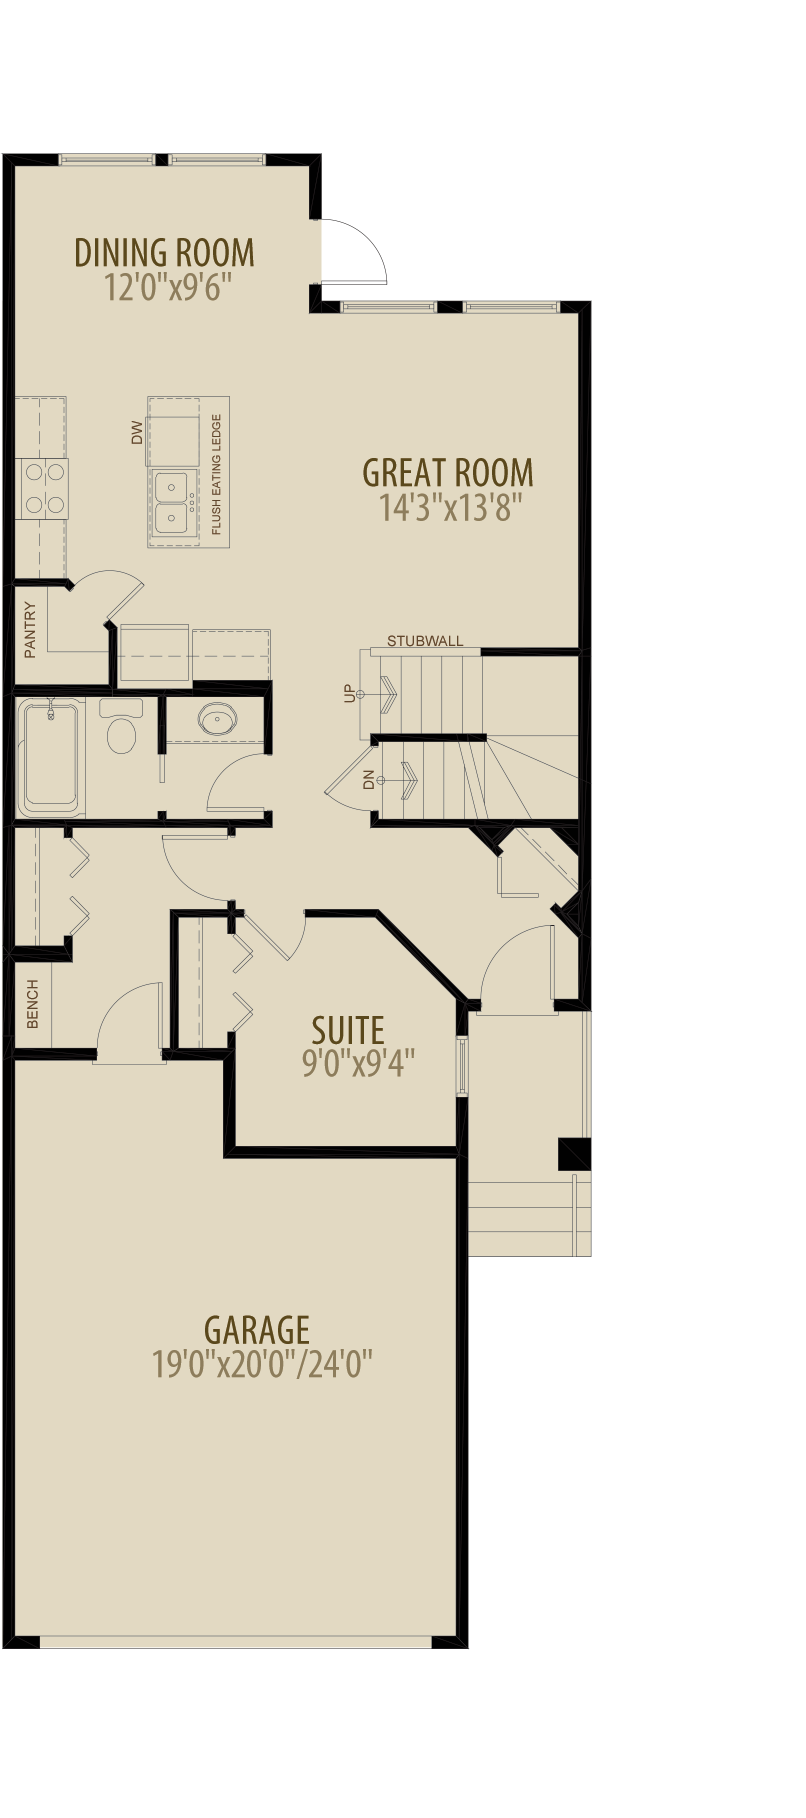 Main Floor Suite Adds 40 sq ft